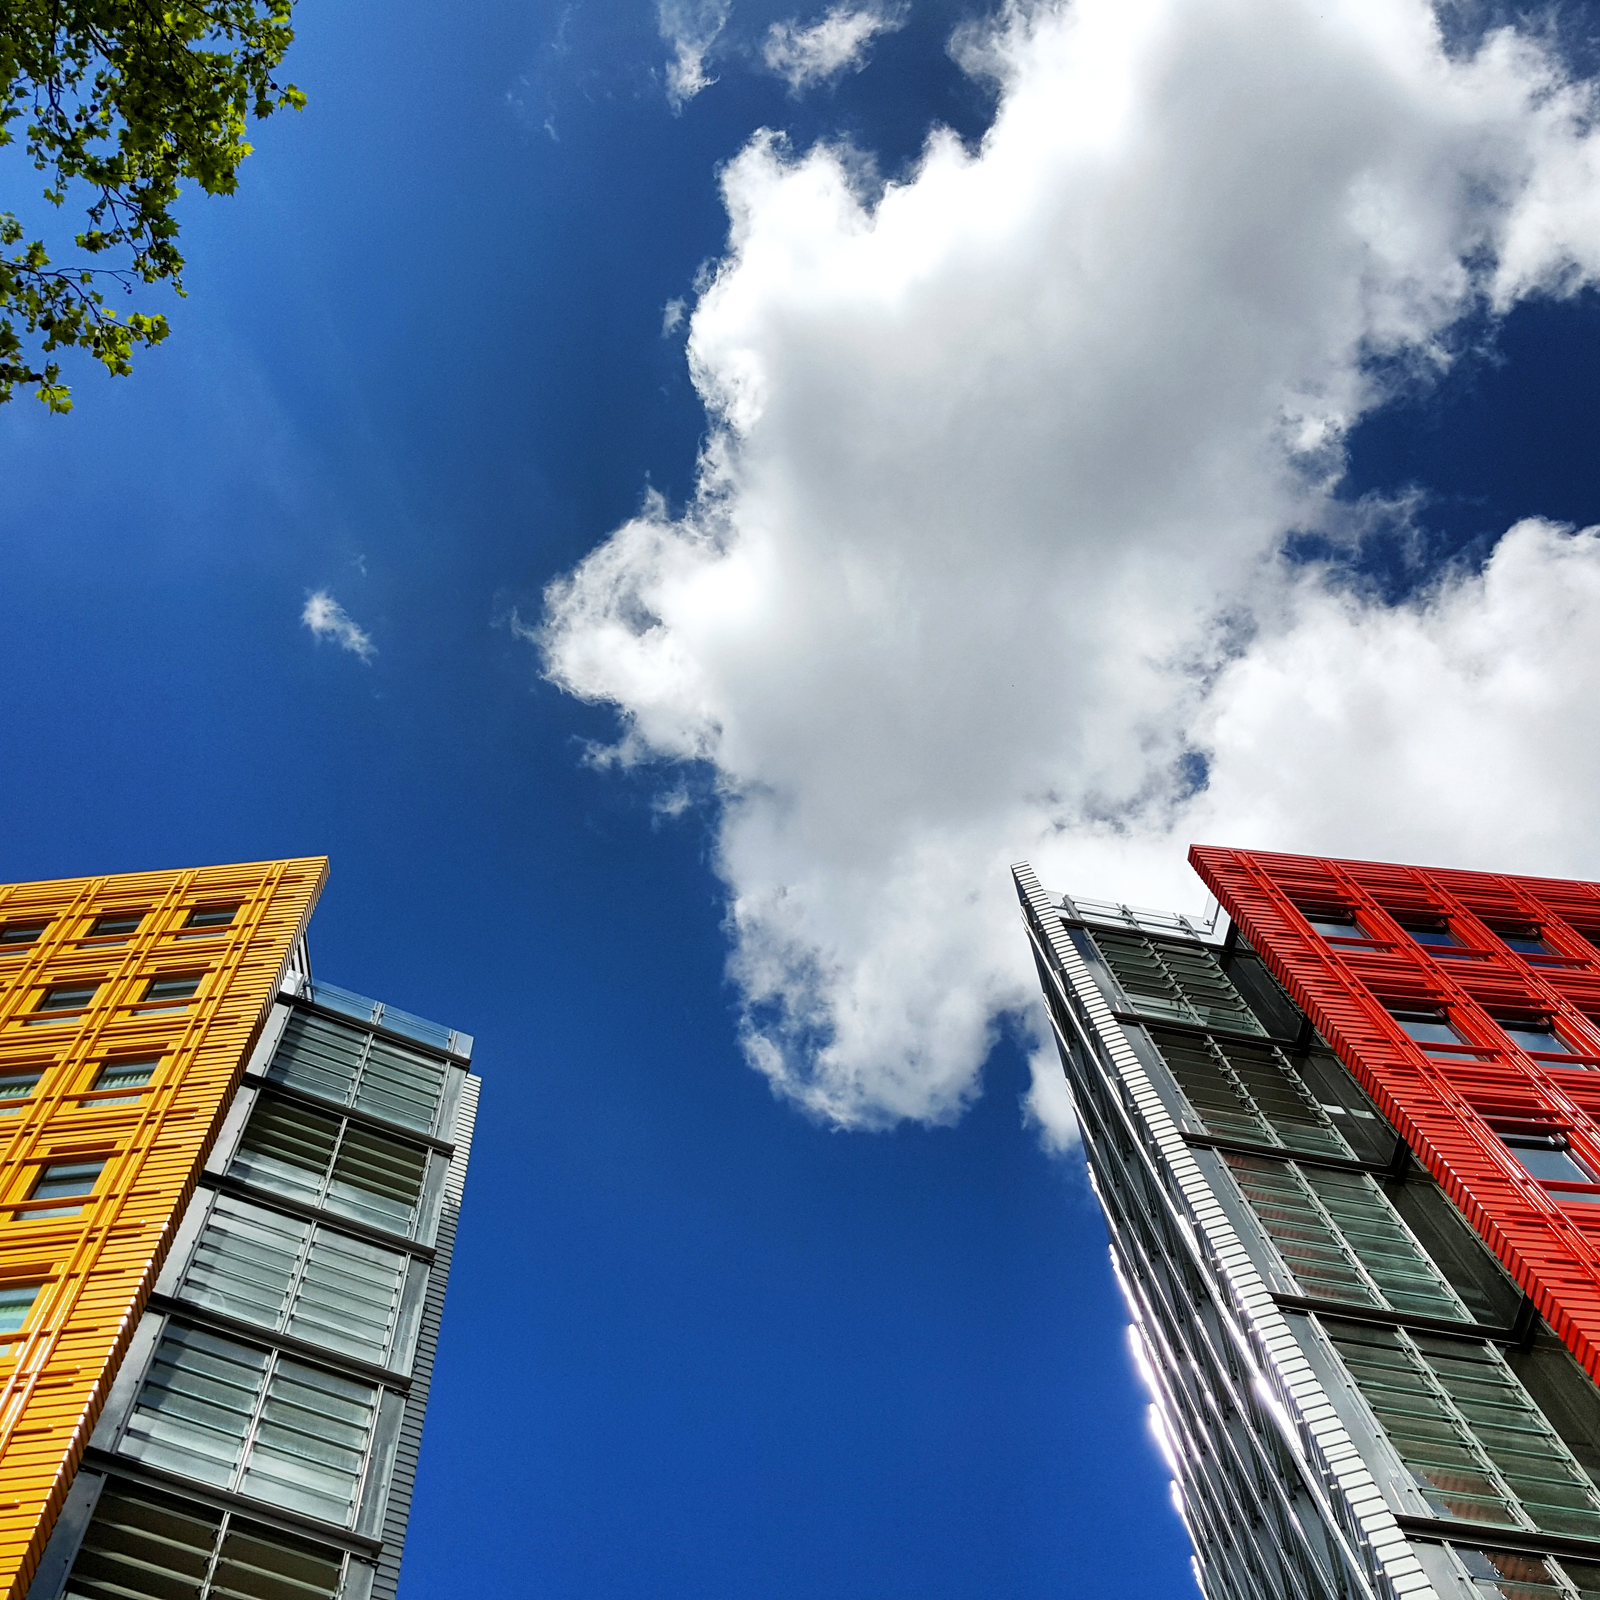 Photo du mois Nuage et design Londres - Cloud and buildings Google UK Central Saint Giles London design Renzo Piano picture with Samsung GS6 edge by United states of paris blog